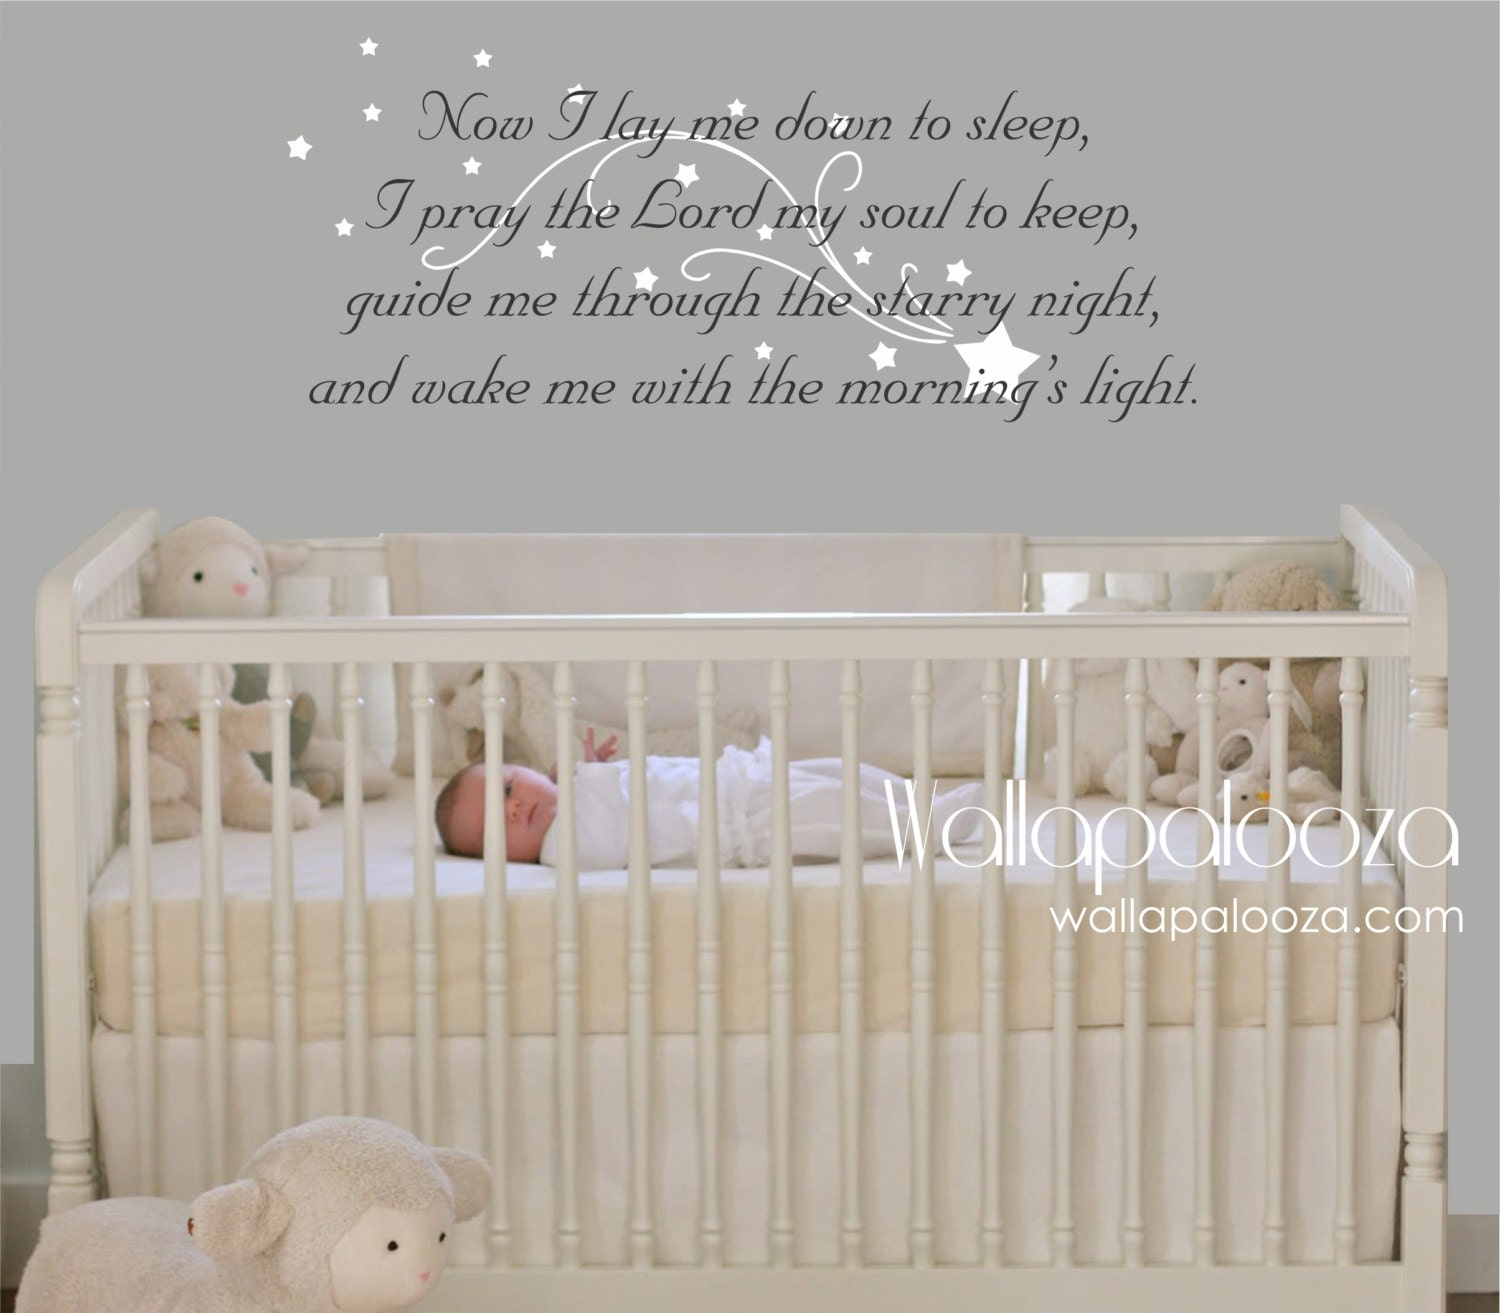 Now I Lay Me Down To Sleep Wall Decal Prayer Wall Decal - Wall decals baby room